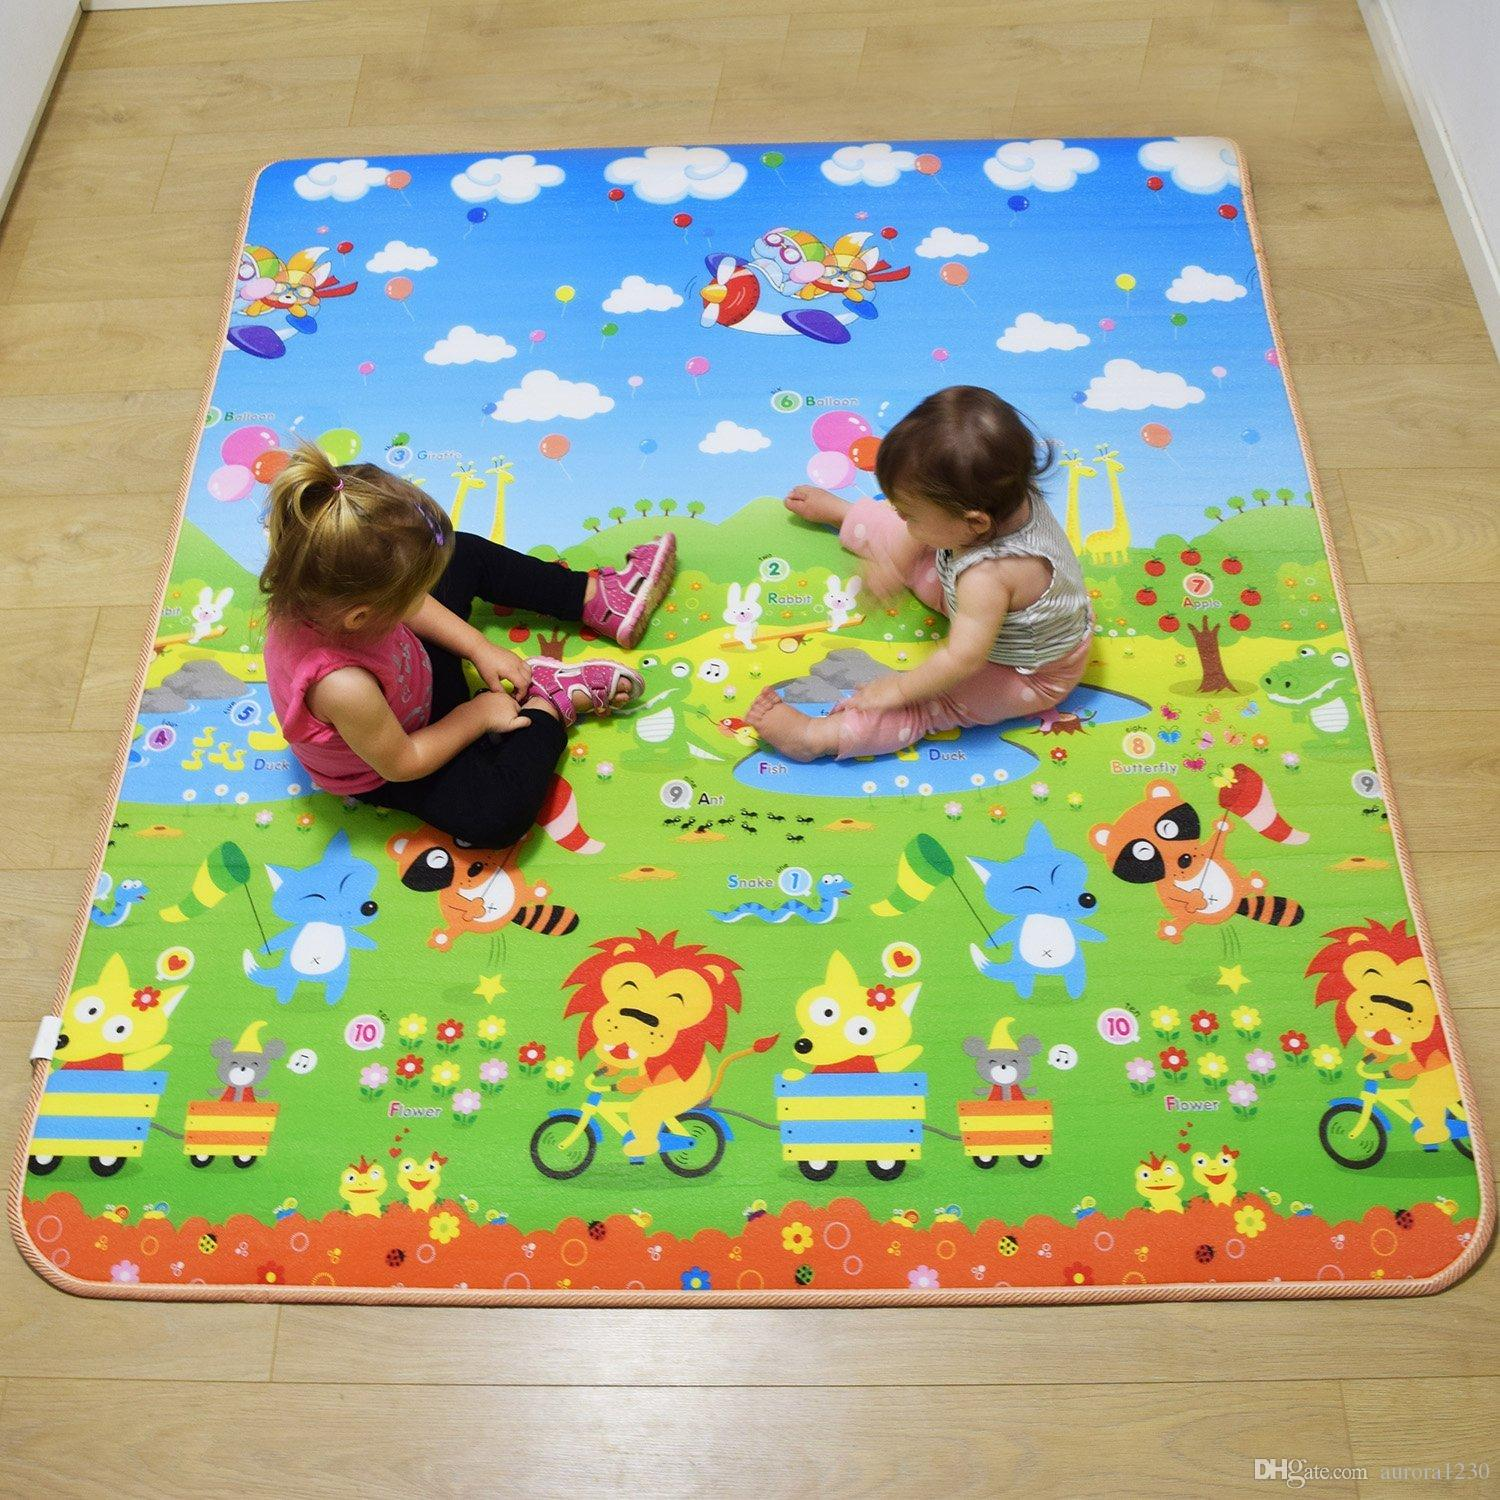 collections rugsdirect road nz rug direct mat for co size city mats shop kids